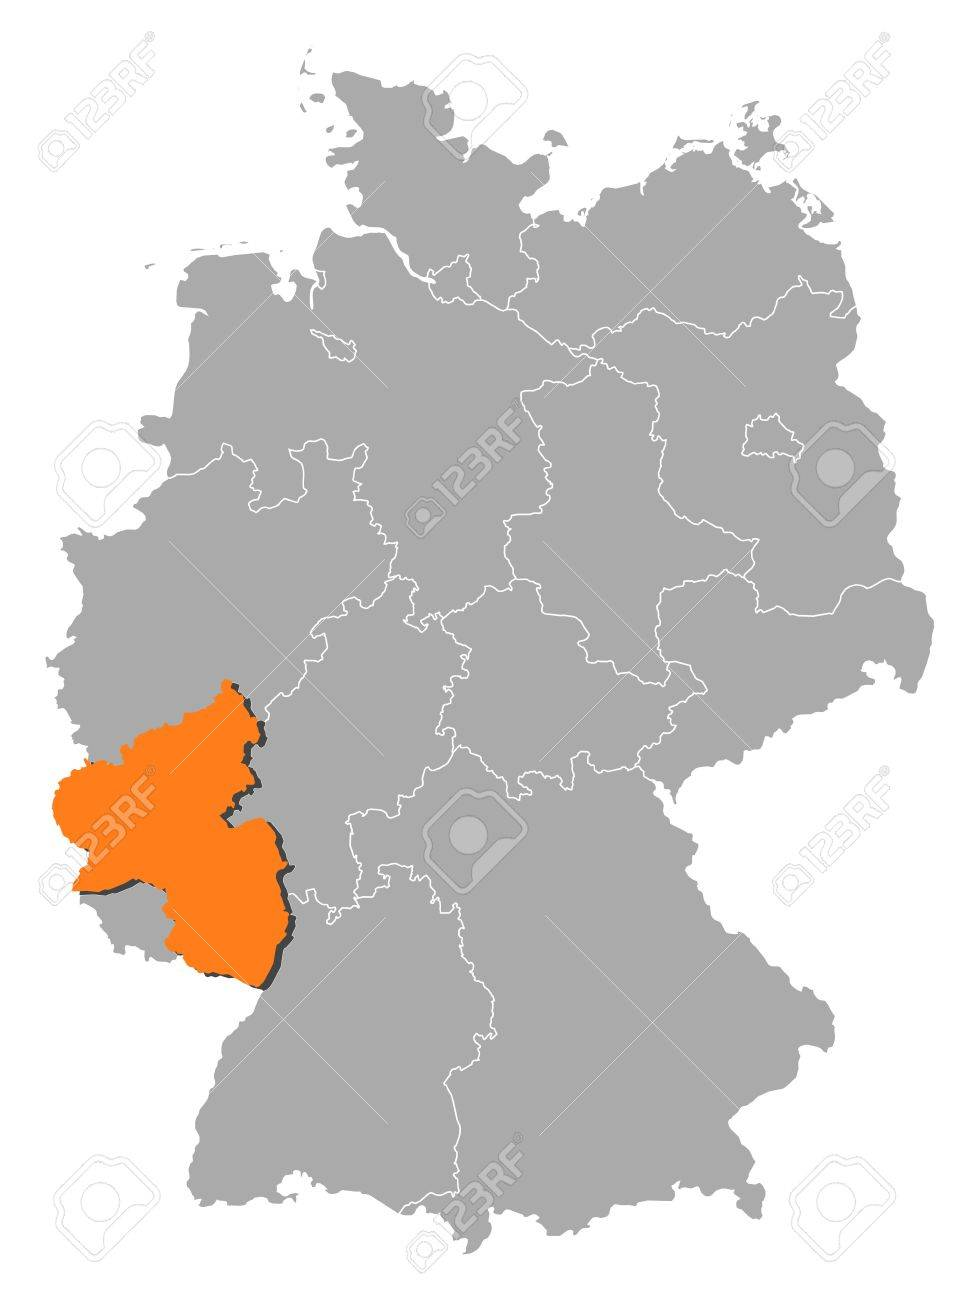 Political Map Of Germany With The Several States Where Rhineland - Germany map states